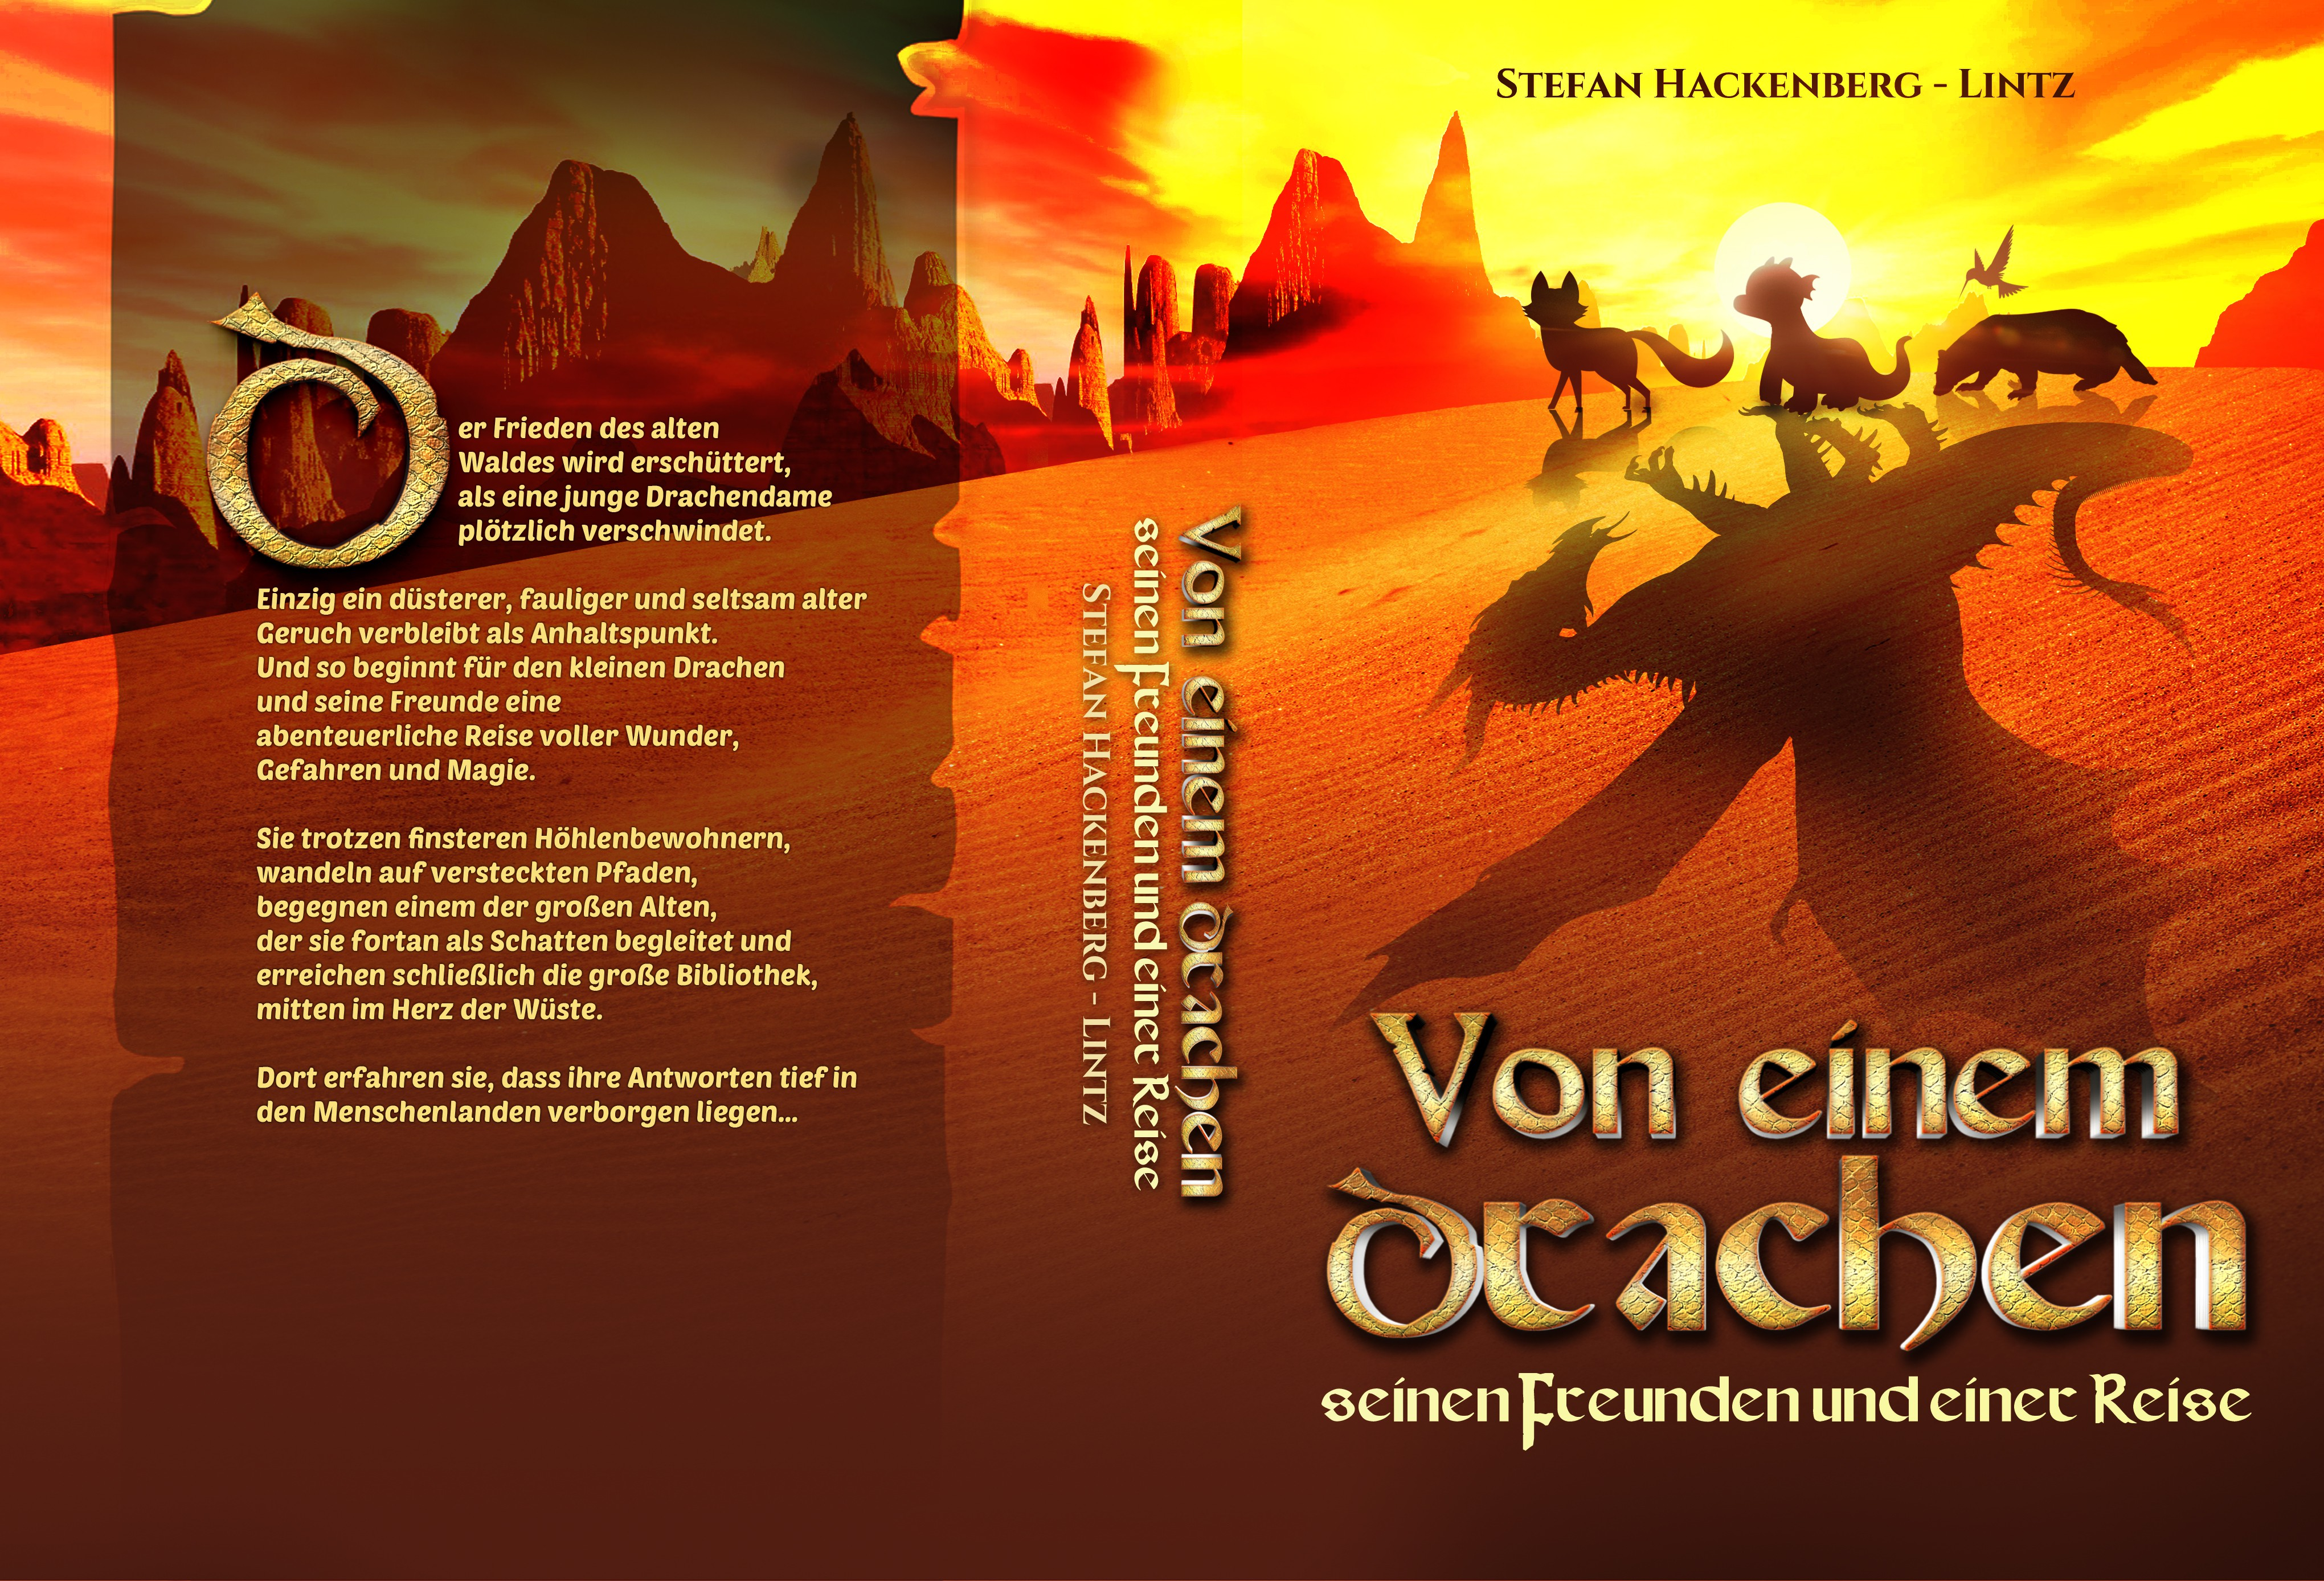 Back cover and spine design